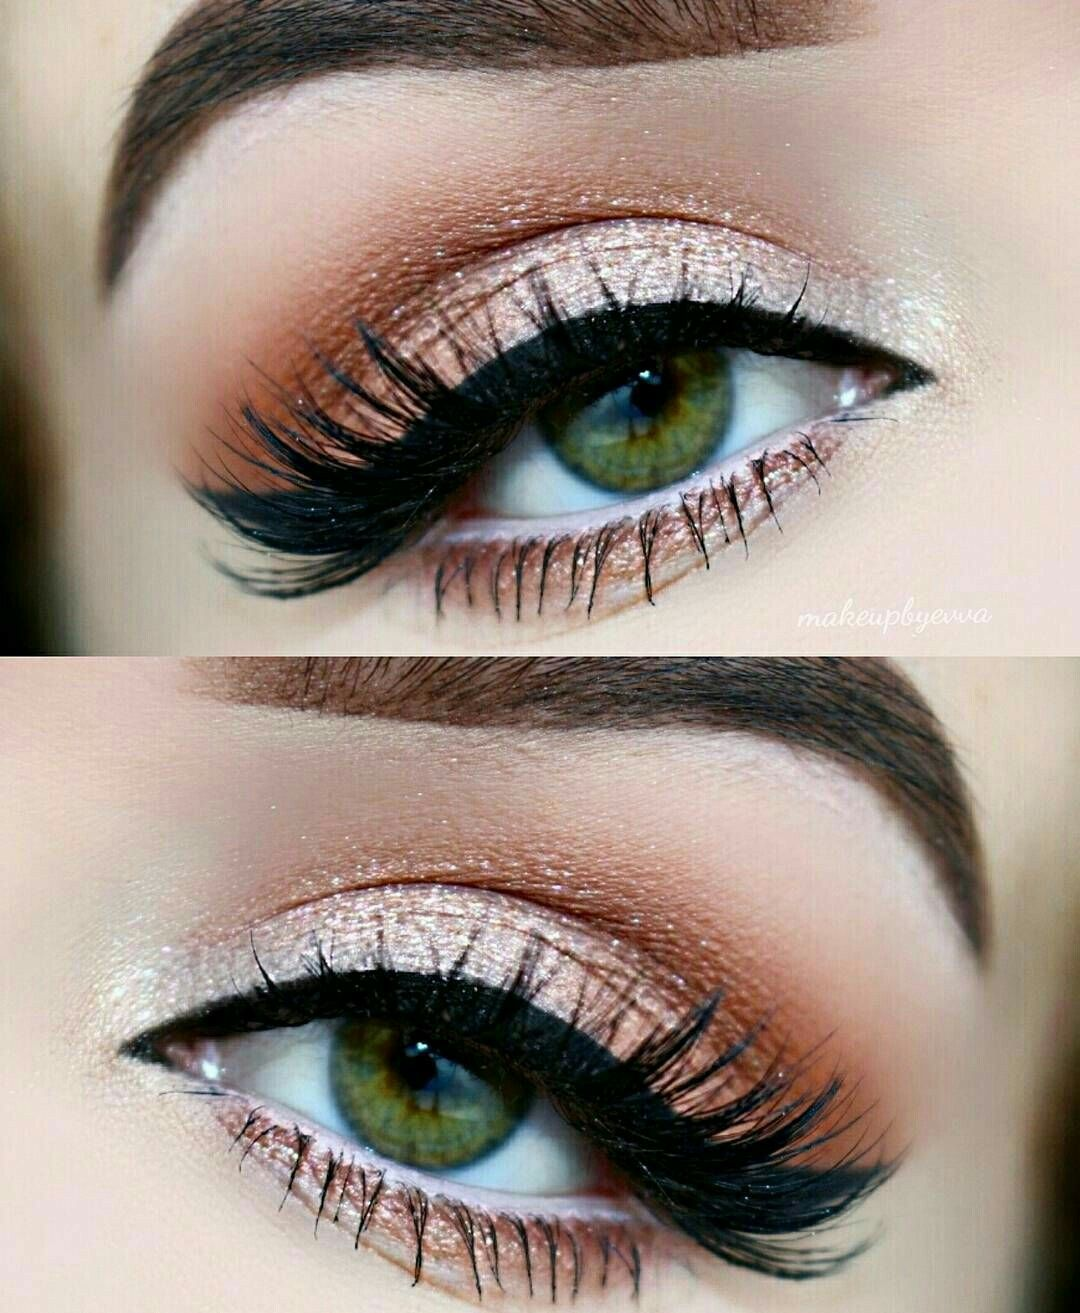 Pin by audrey nickell on makeup pinterest make up eye and make